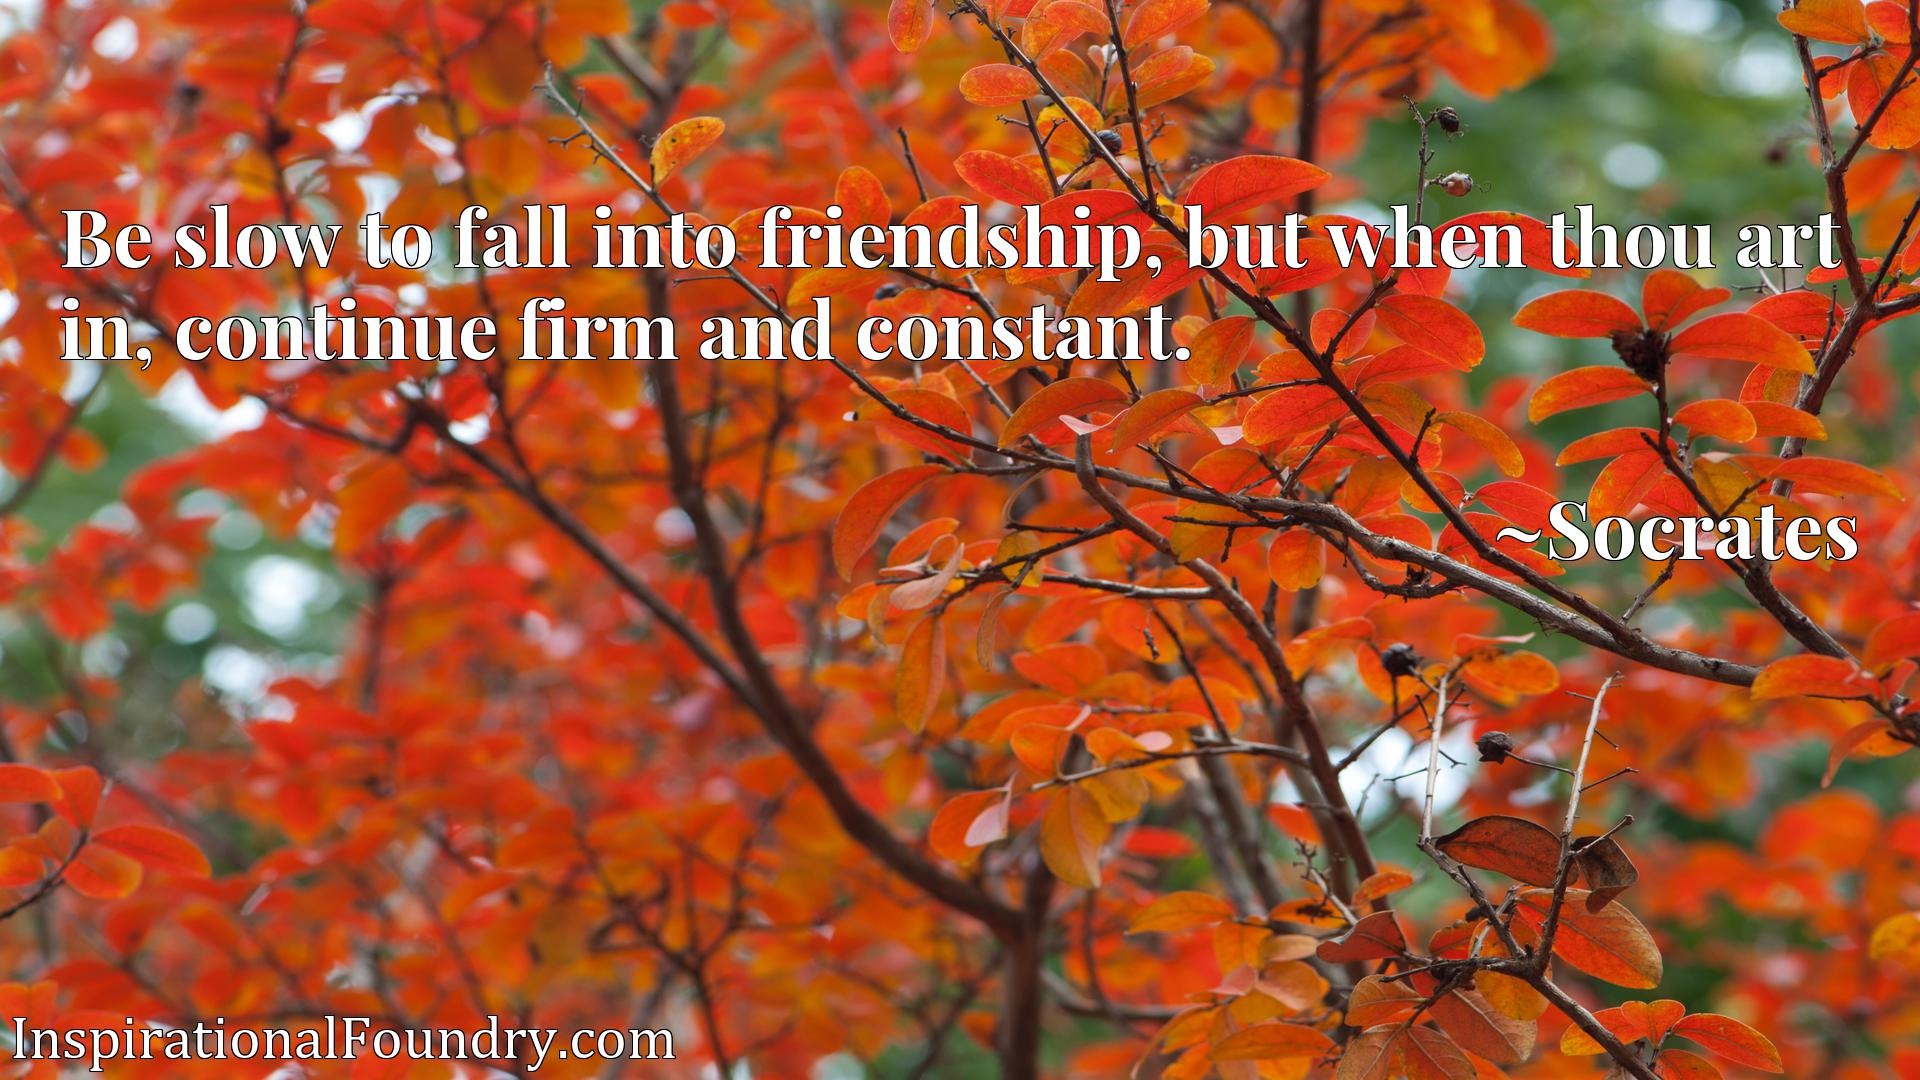 Be slow to fall into friendship, but when thou art in, continue firm and constant.